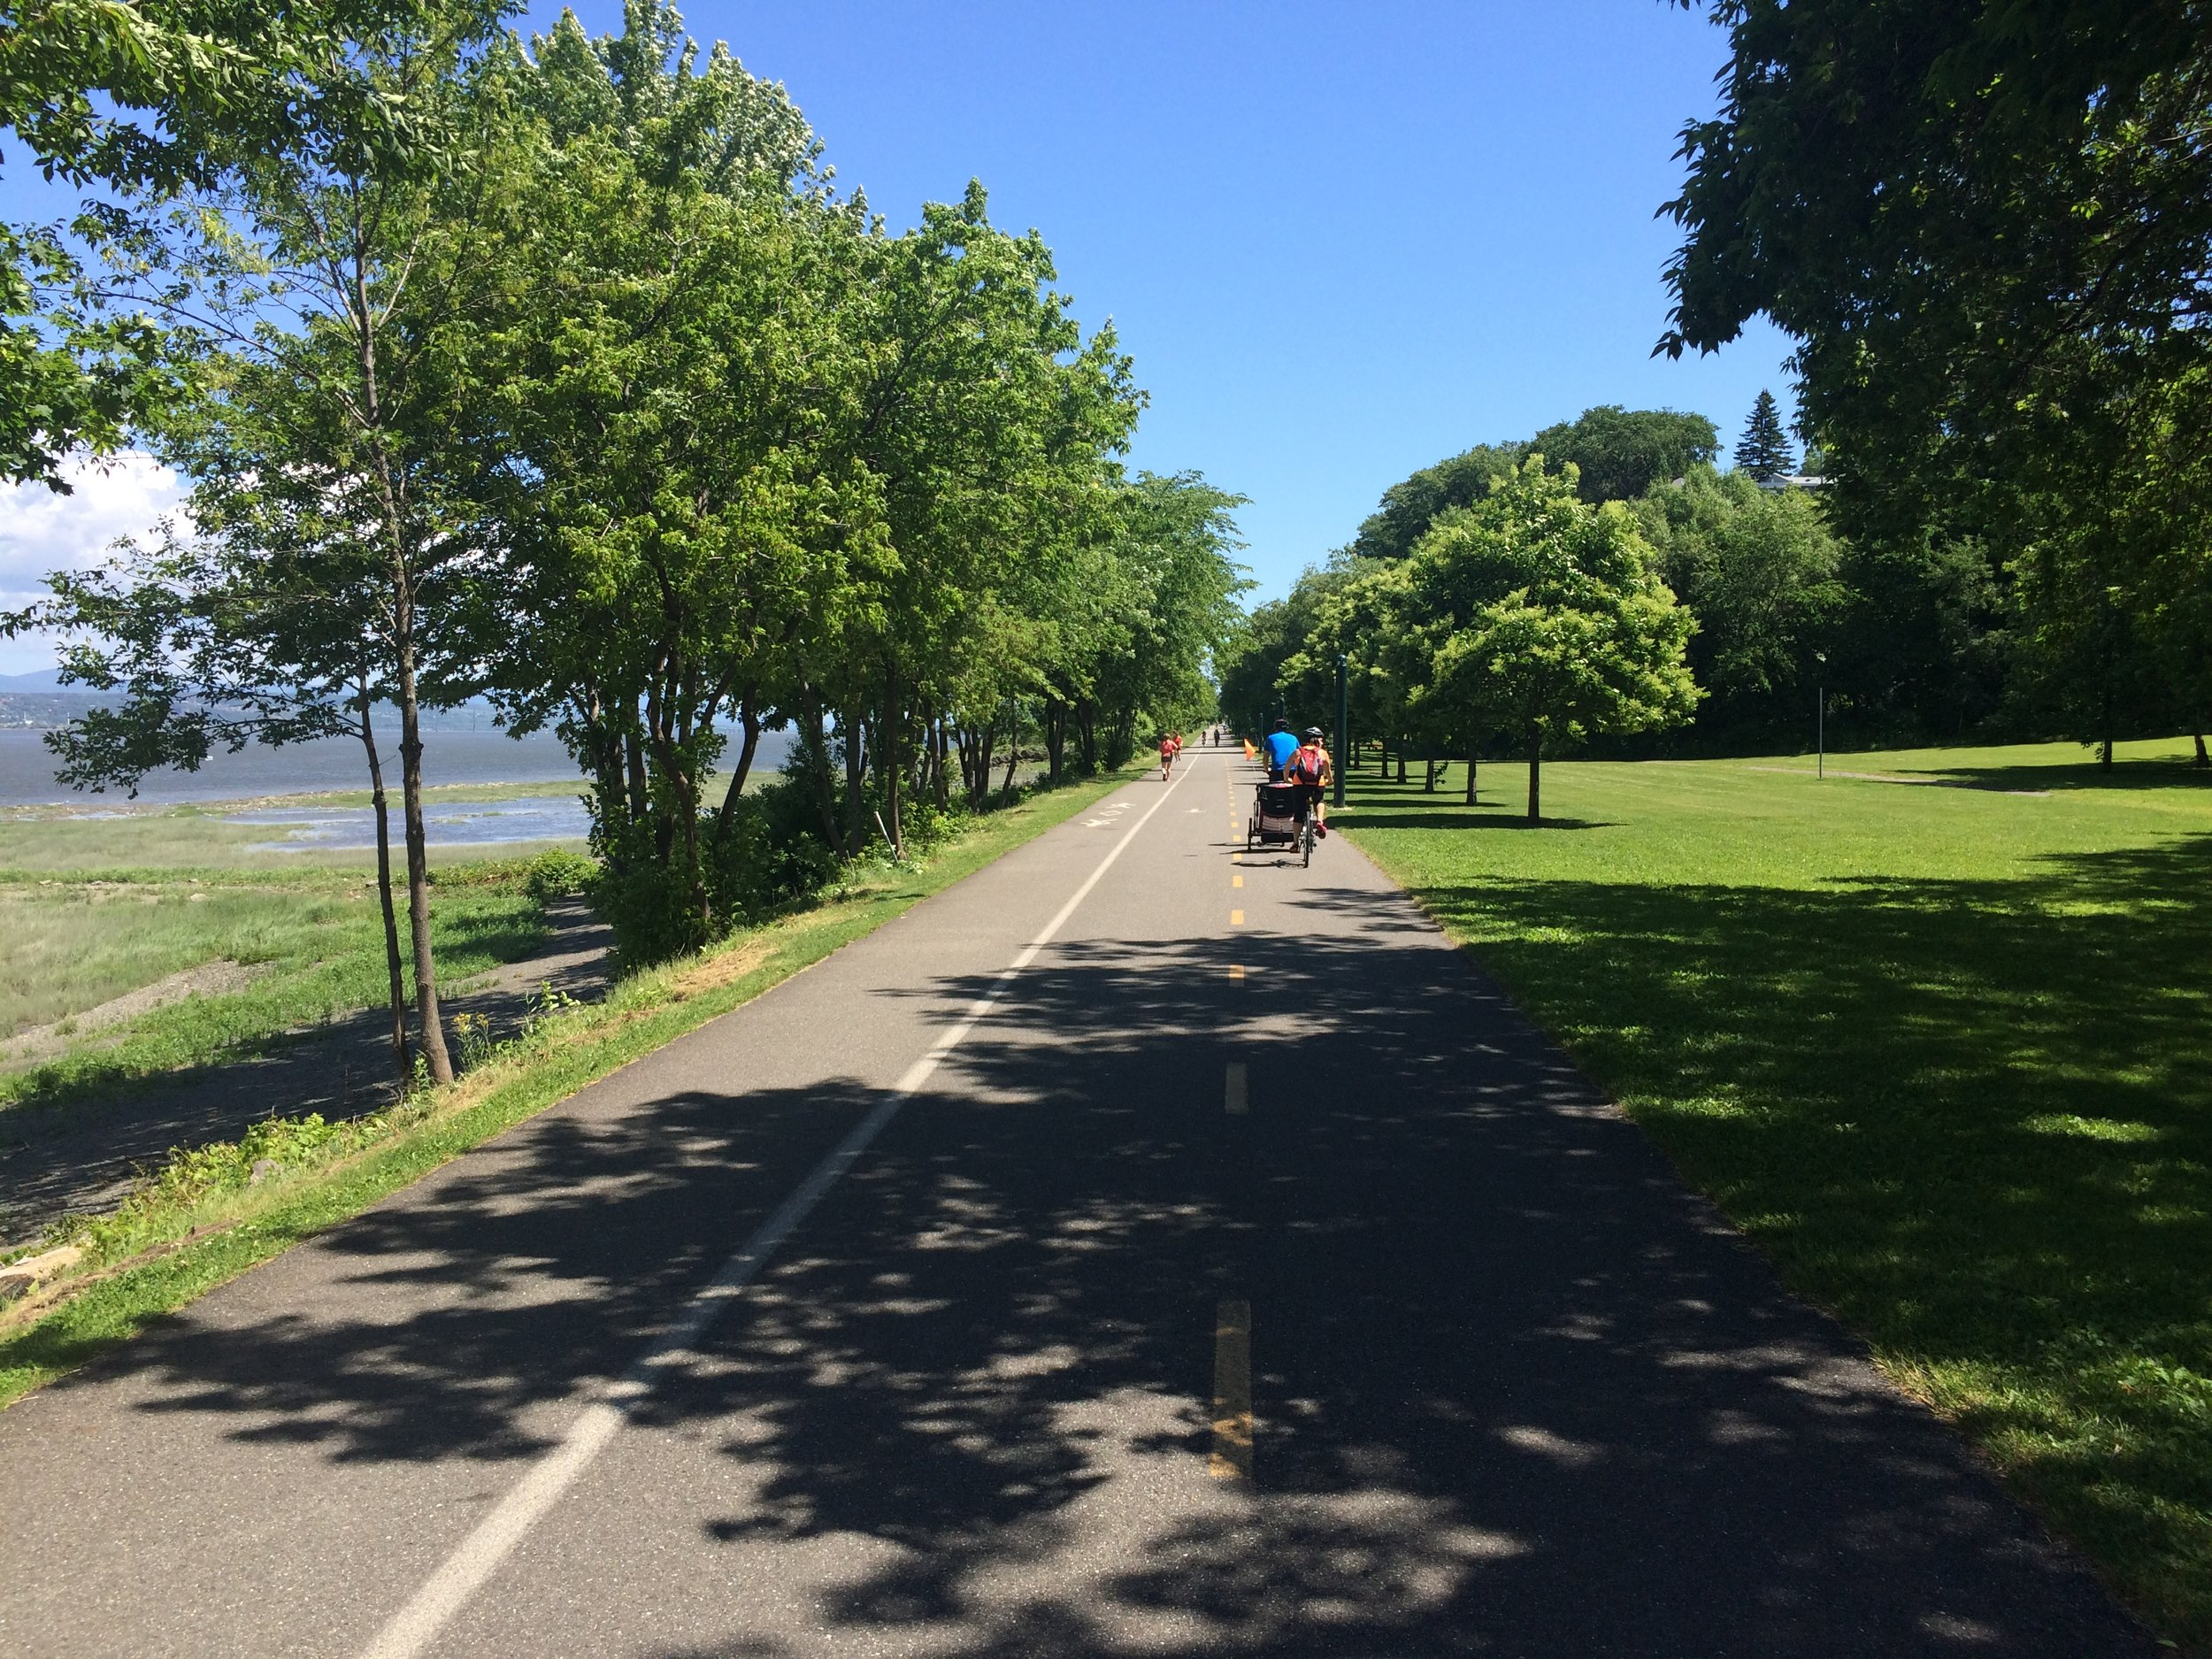 Quebec seems to have been designed for bikers - I'm going to really miss these paths